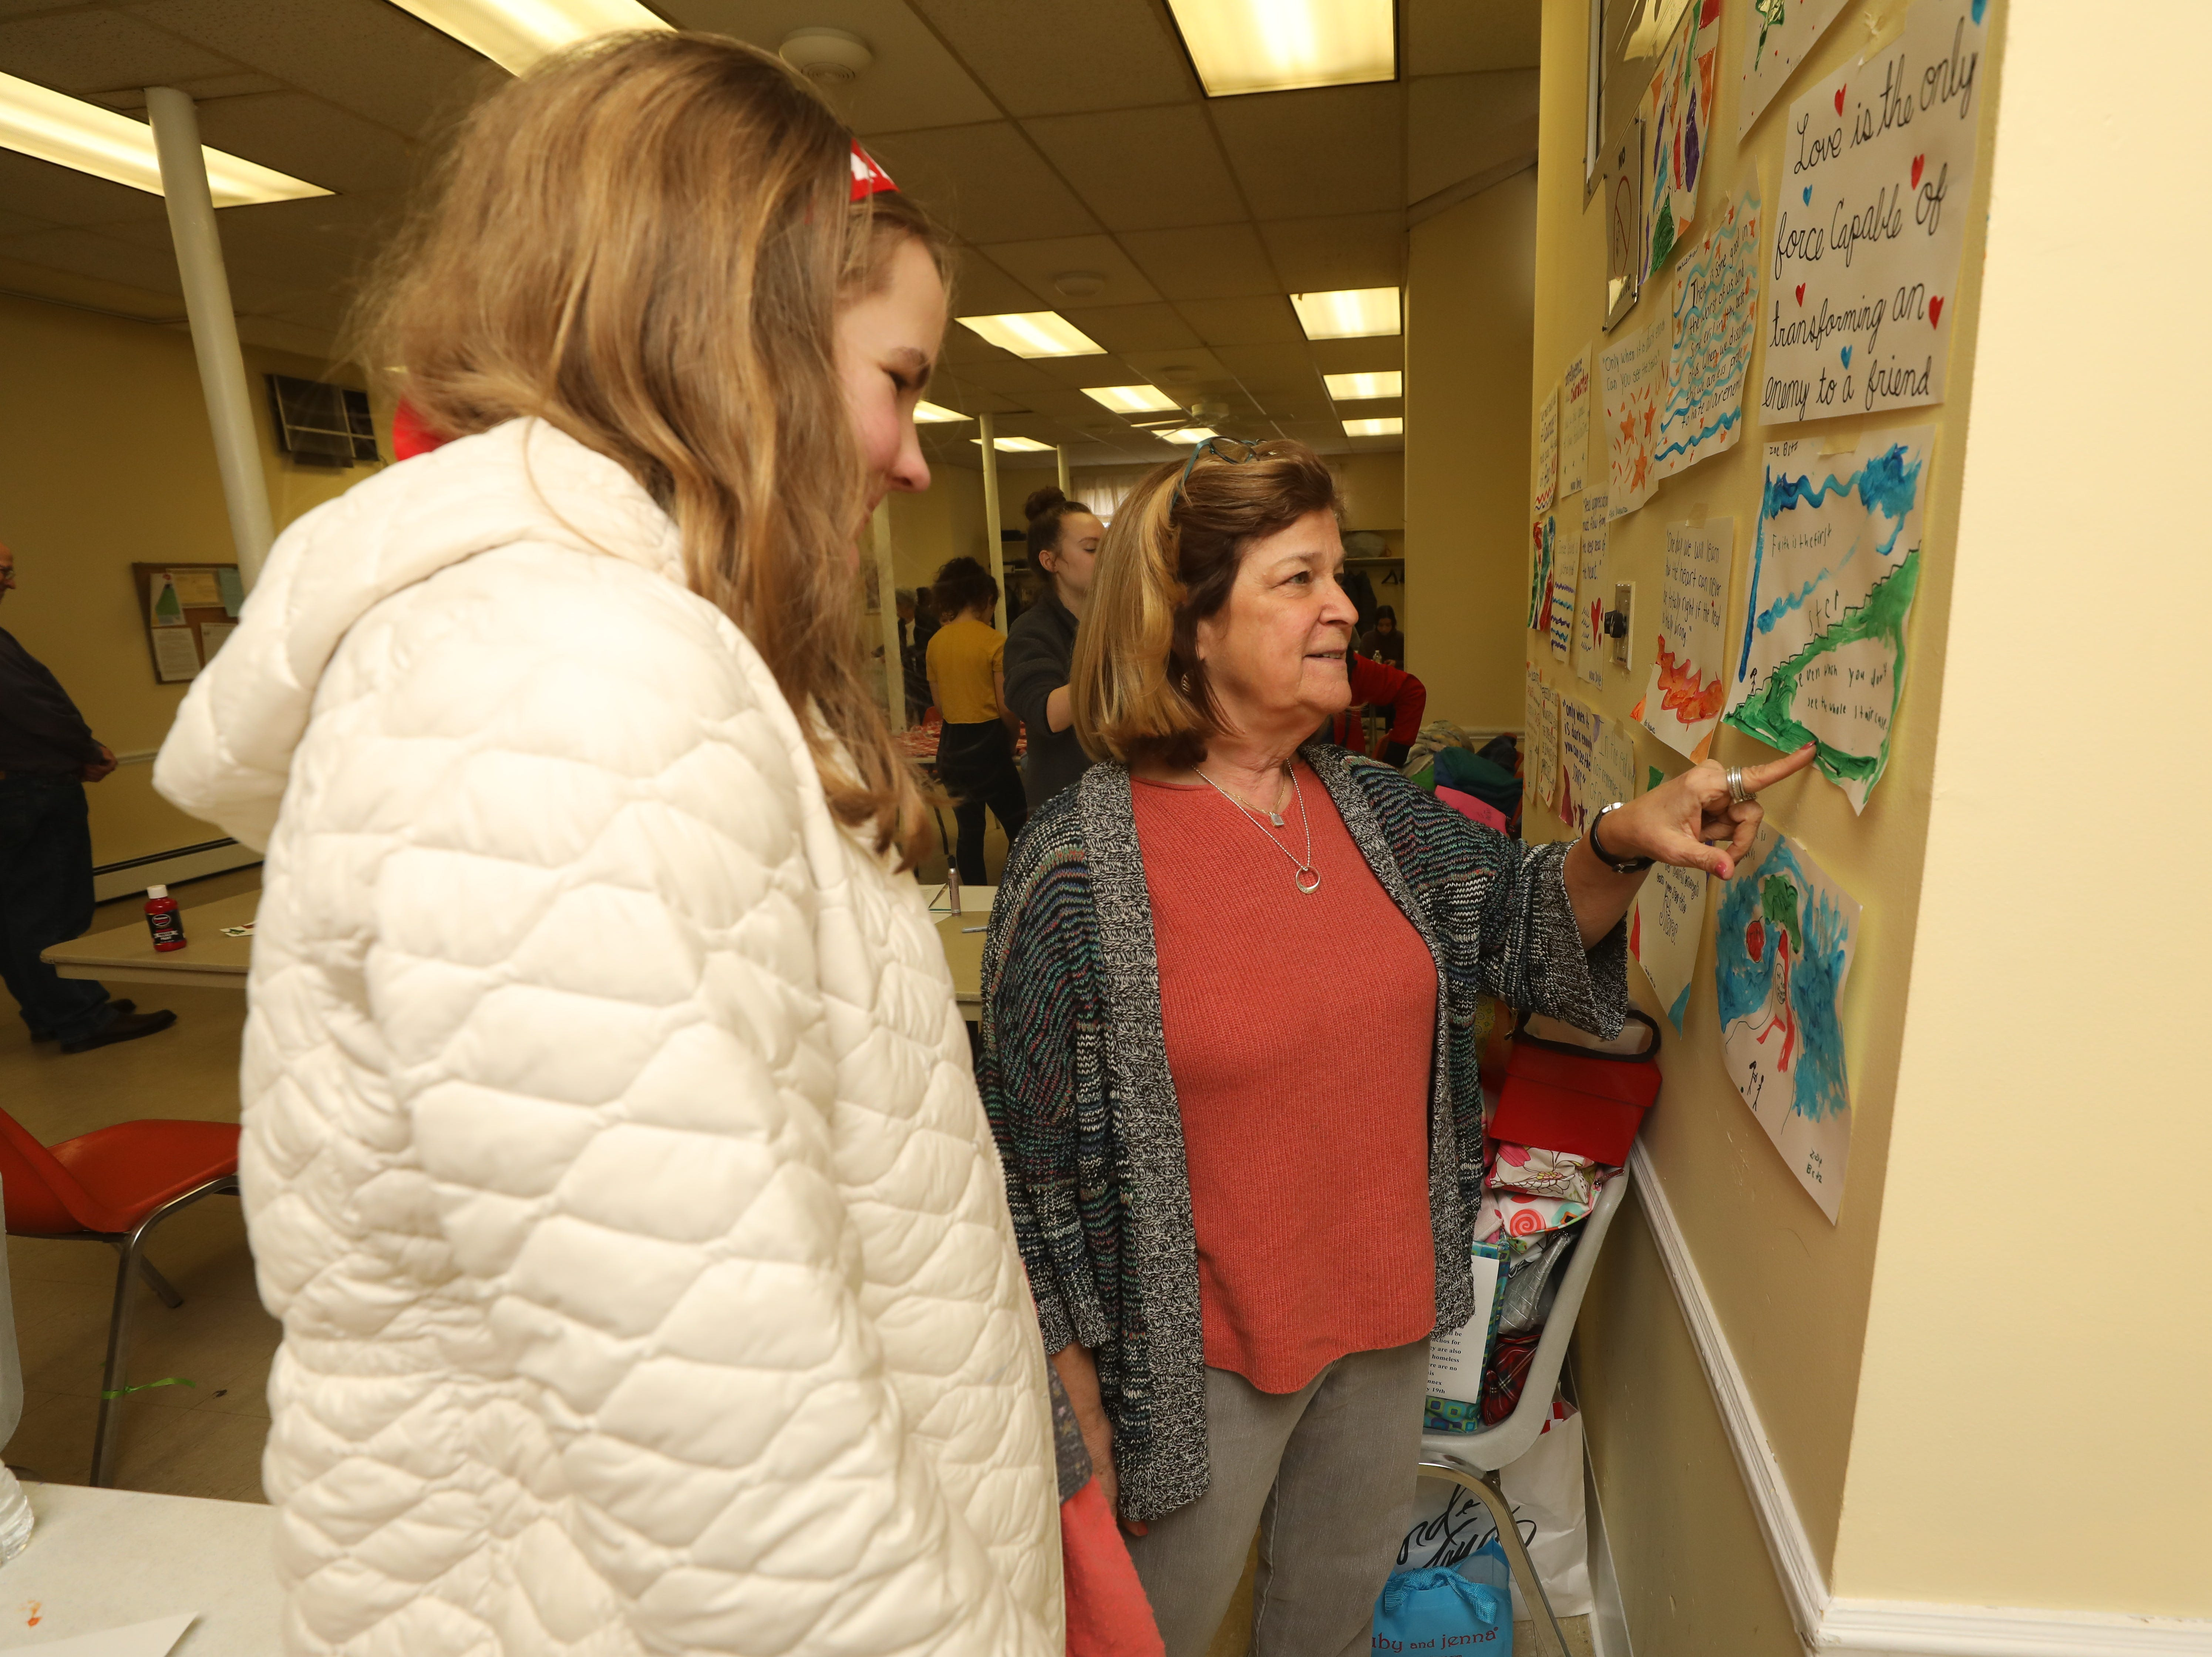 Zoe Betz 12 and Roann Rubin, a member of the Glen Rock/Ridgewood MLK Committee look at quotes from Dr. Martin Luther King, drawn and posted by those who attended a Day of Service at the Glen Rock Annex on January 19, 2019 in recognition of Martin Luther King Day.